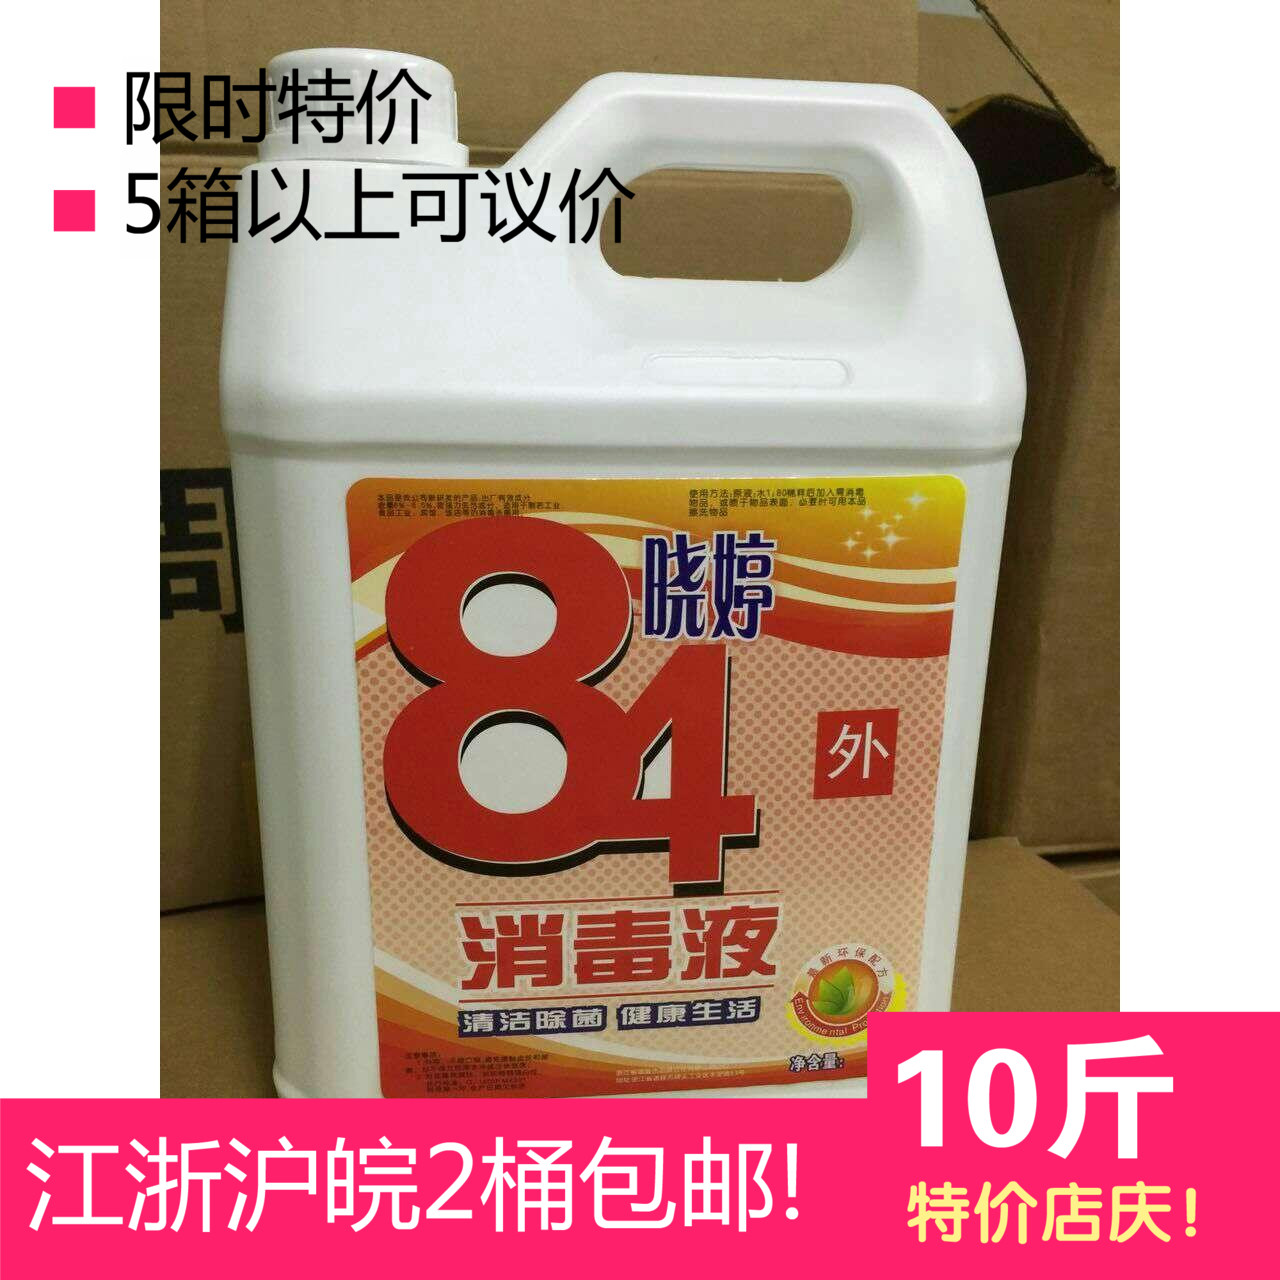 Xiao Ting 5 kg VAT 84 disinfectant hotel hotel bath high